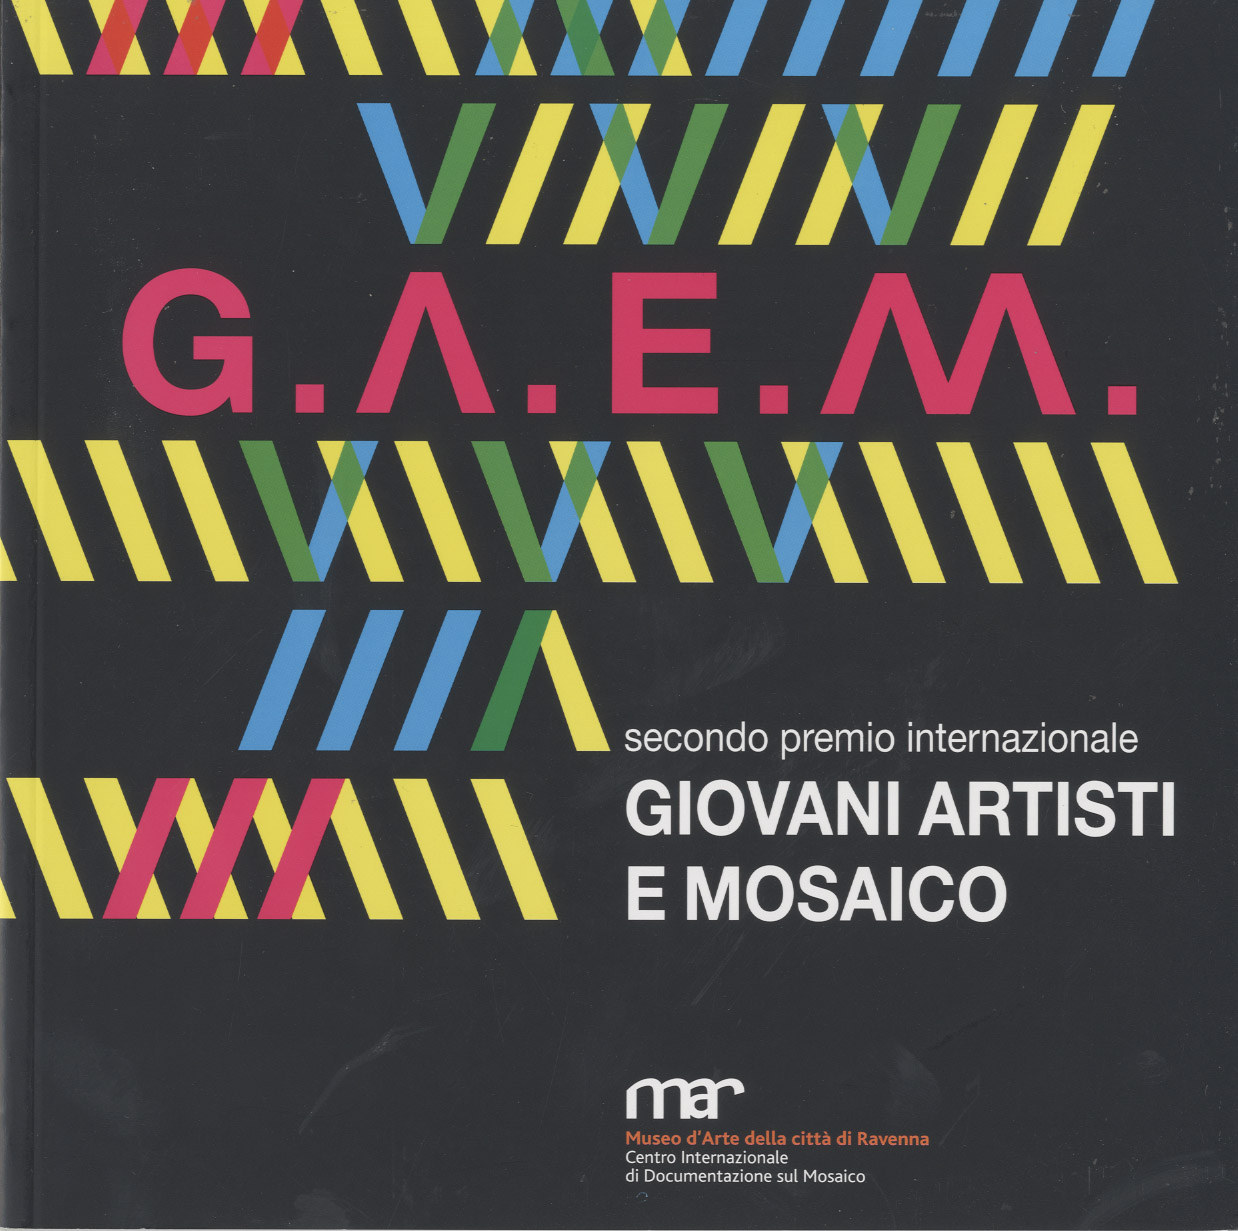 G.A.E.M. Premio internazionale Giovani Artisti e Mosaico Second international prize Young Artists and Mosaic